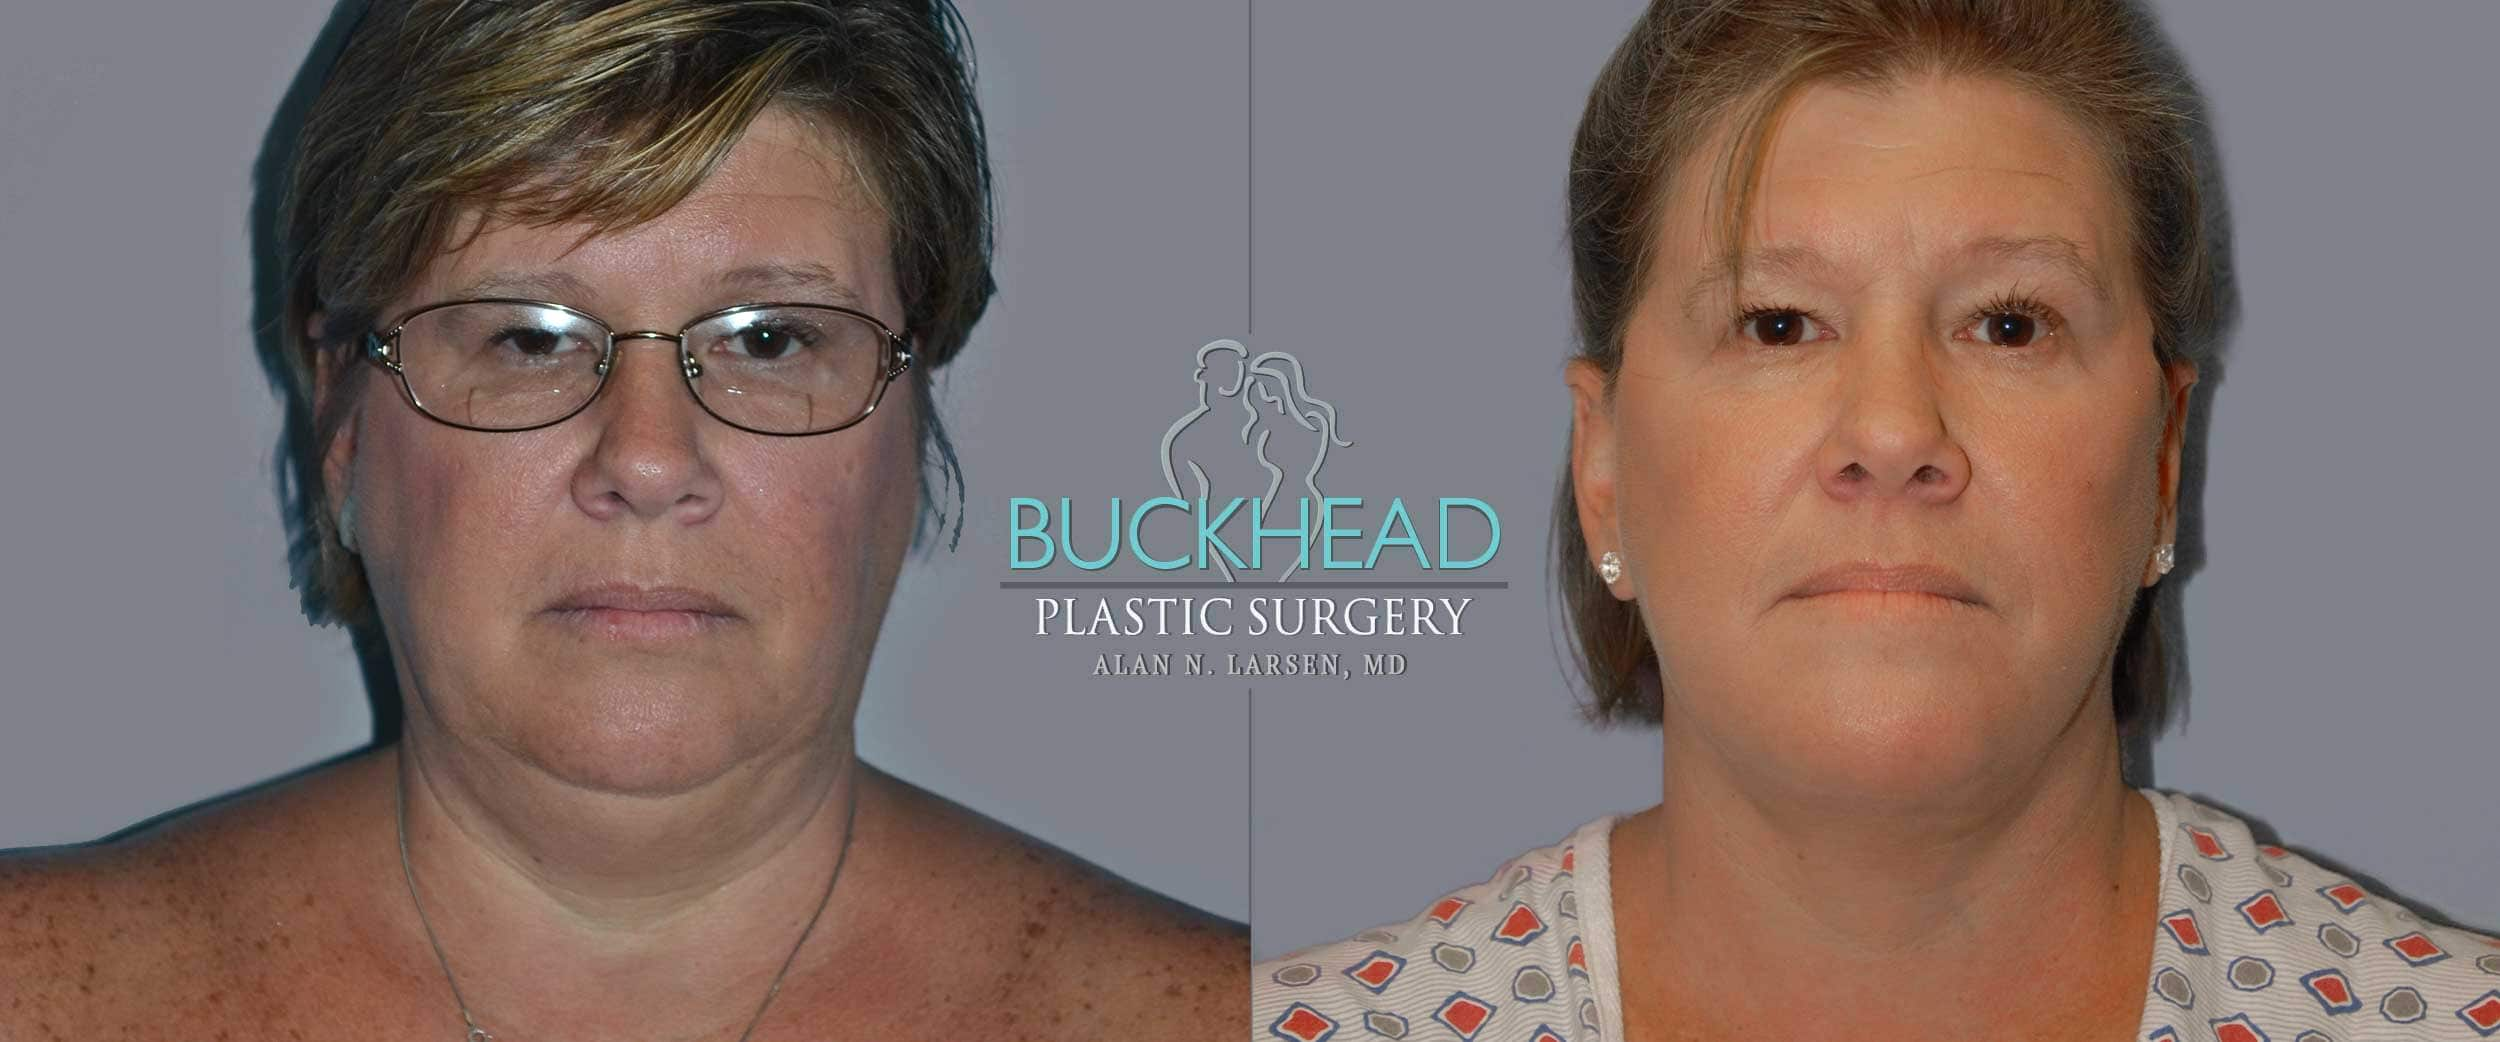 Before and After Photo Gallery | Facelift | Buckhead Plastic Surgery | Alan N. Larsen, MD | Board-Certified Plastic Surgeon | Atlanta GA